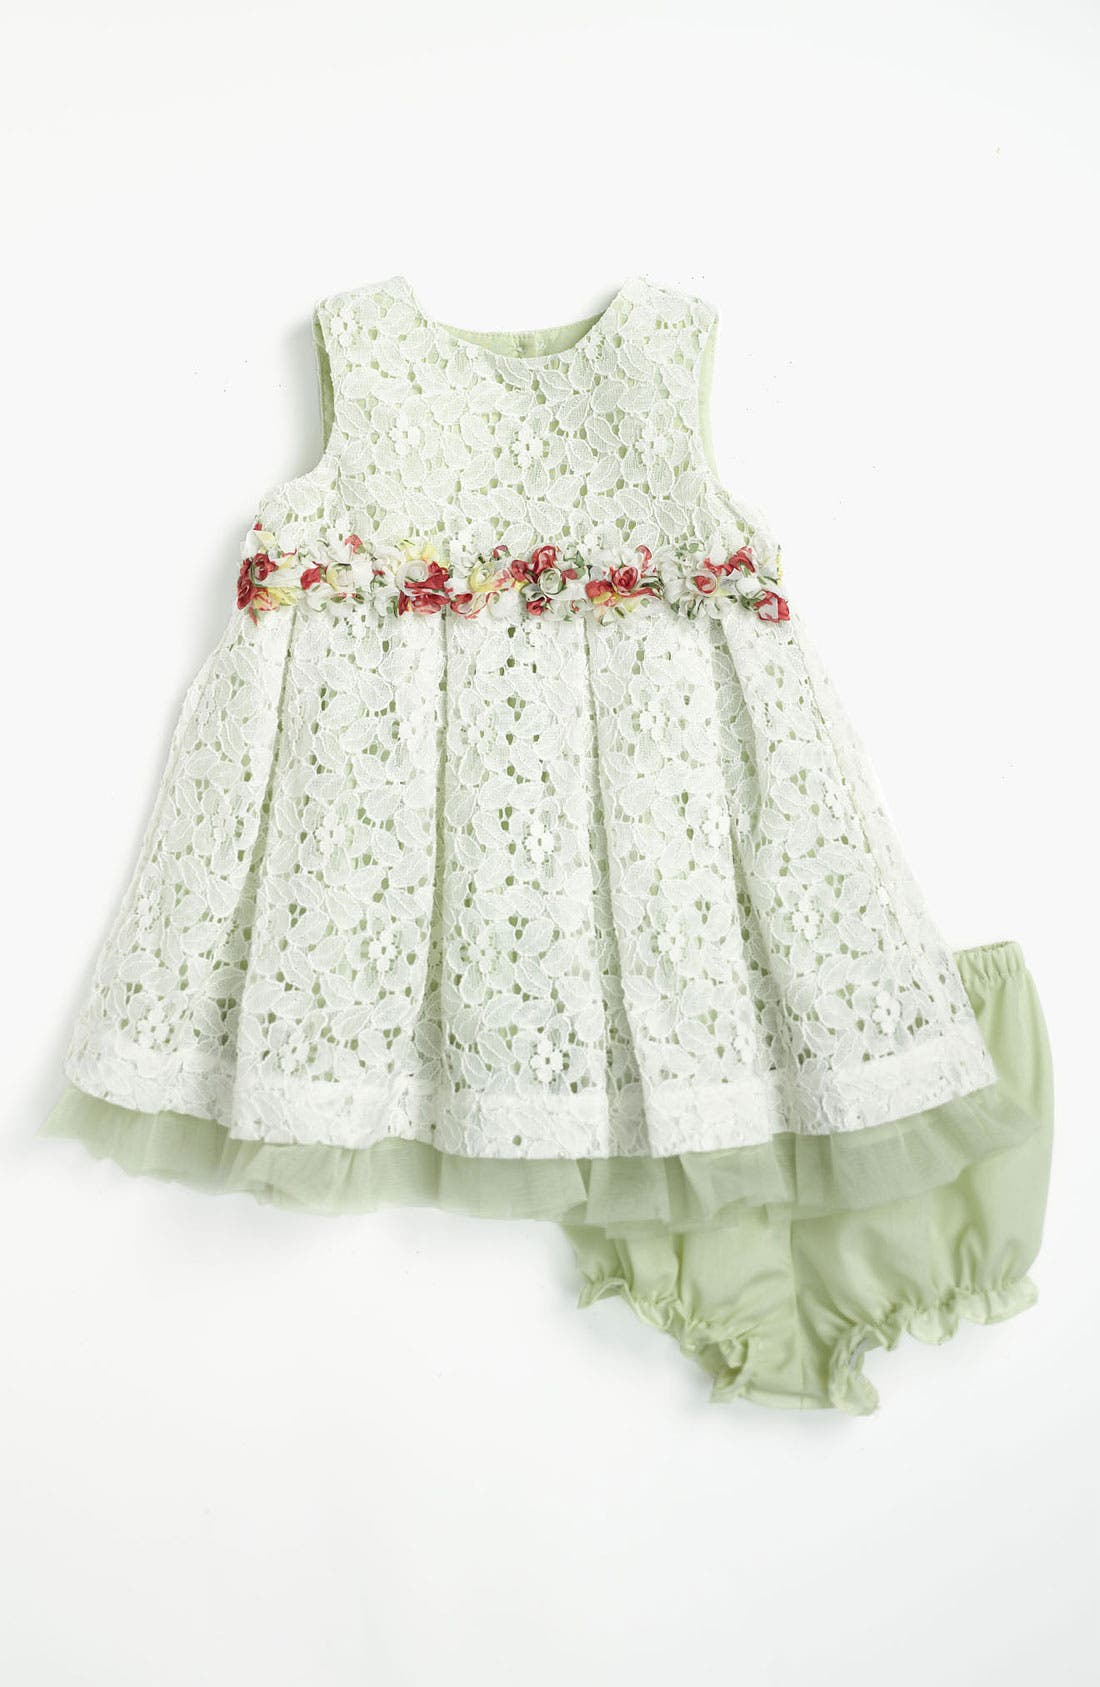 Alternate Image 1 Selected - Pippa & Julie Lace Dress & Bloomers (Baby Girls)